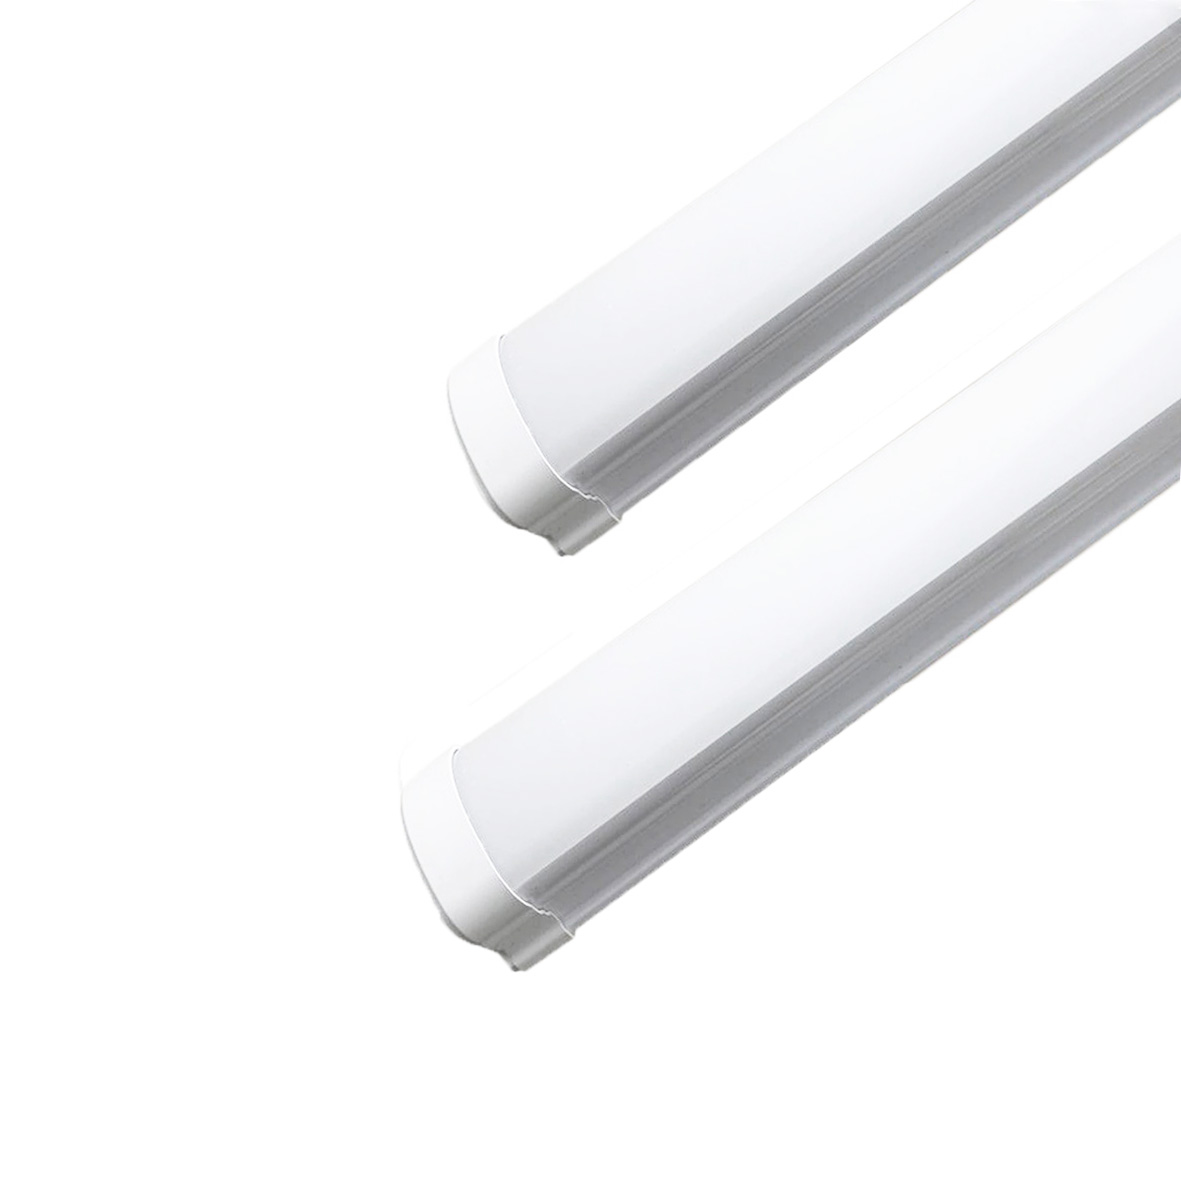 Ceiling light LED 120cm 36w 220v white board high IP65 P48-36w